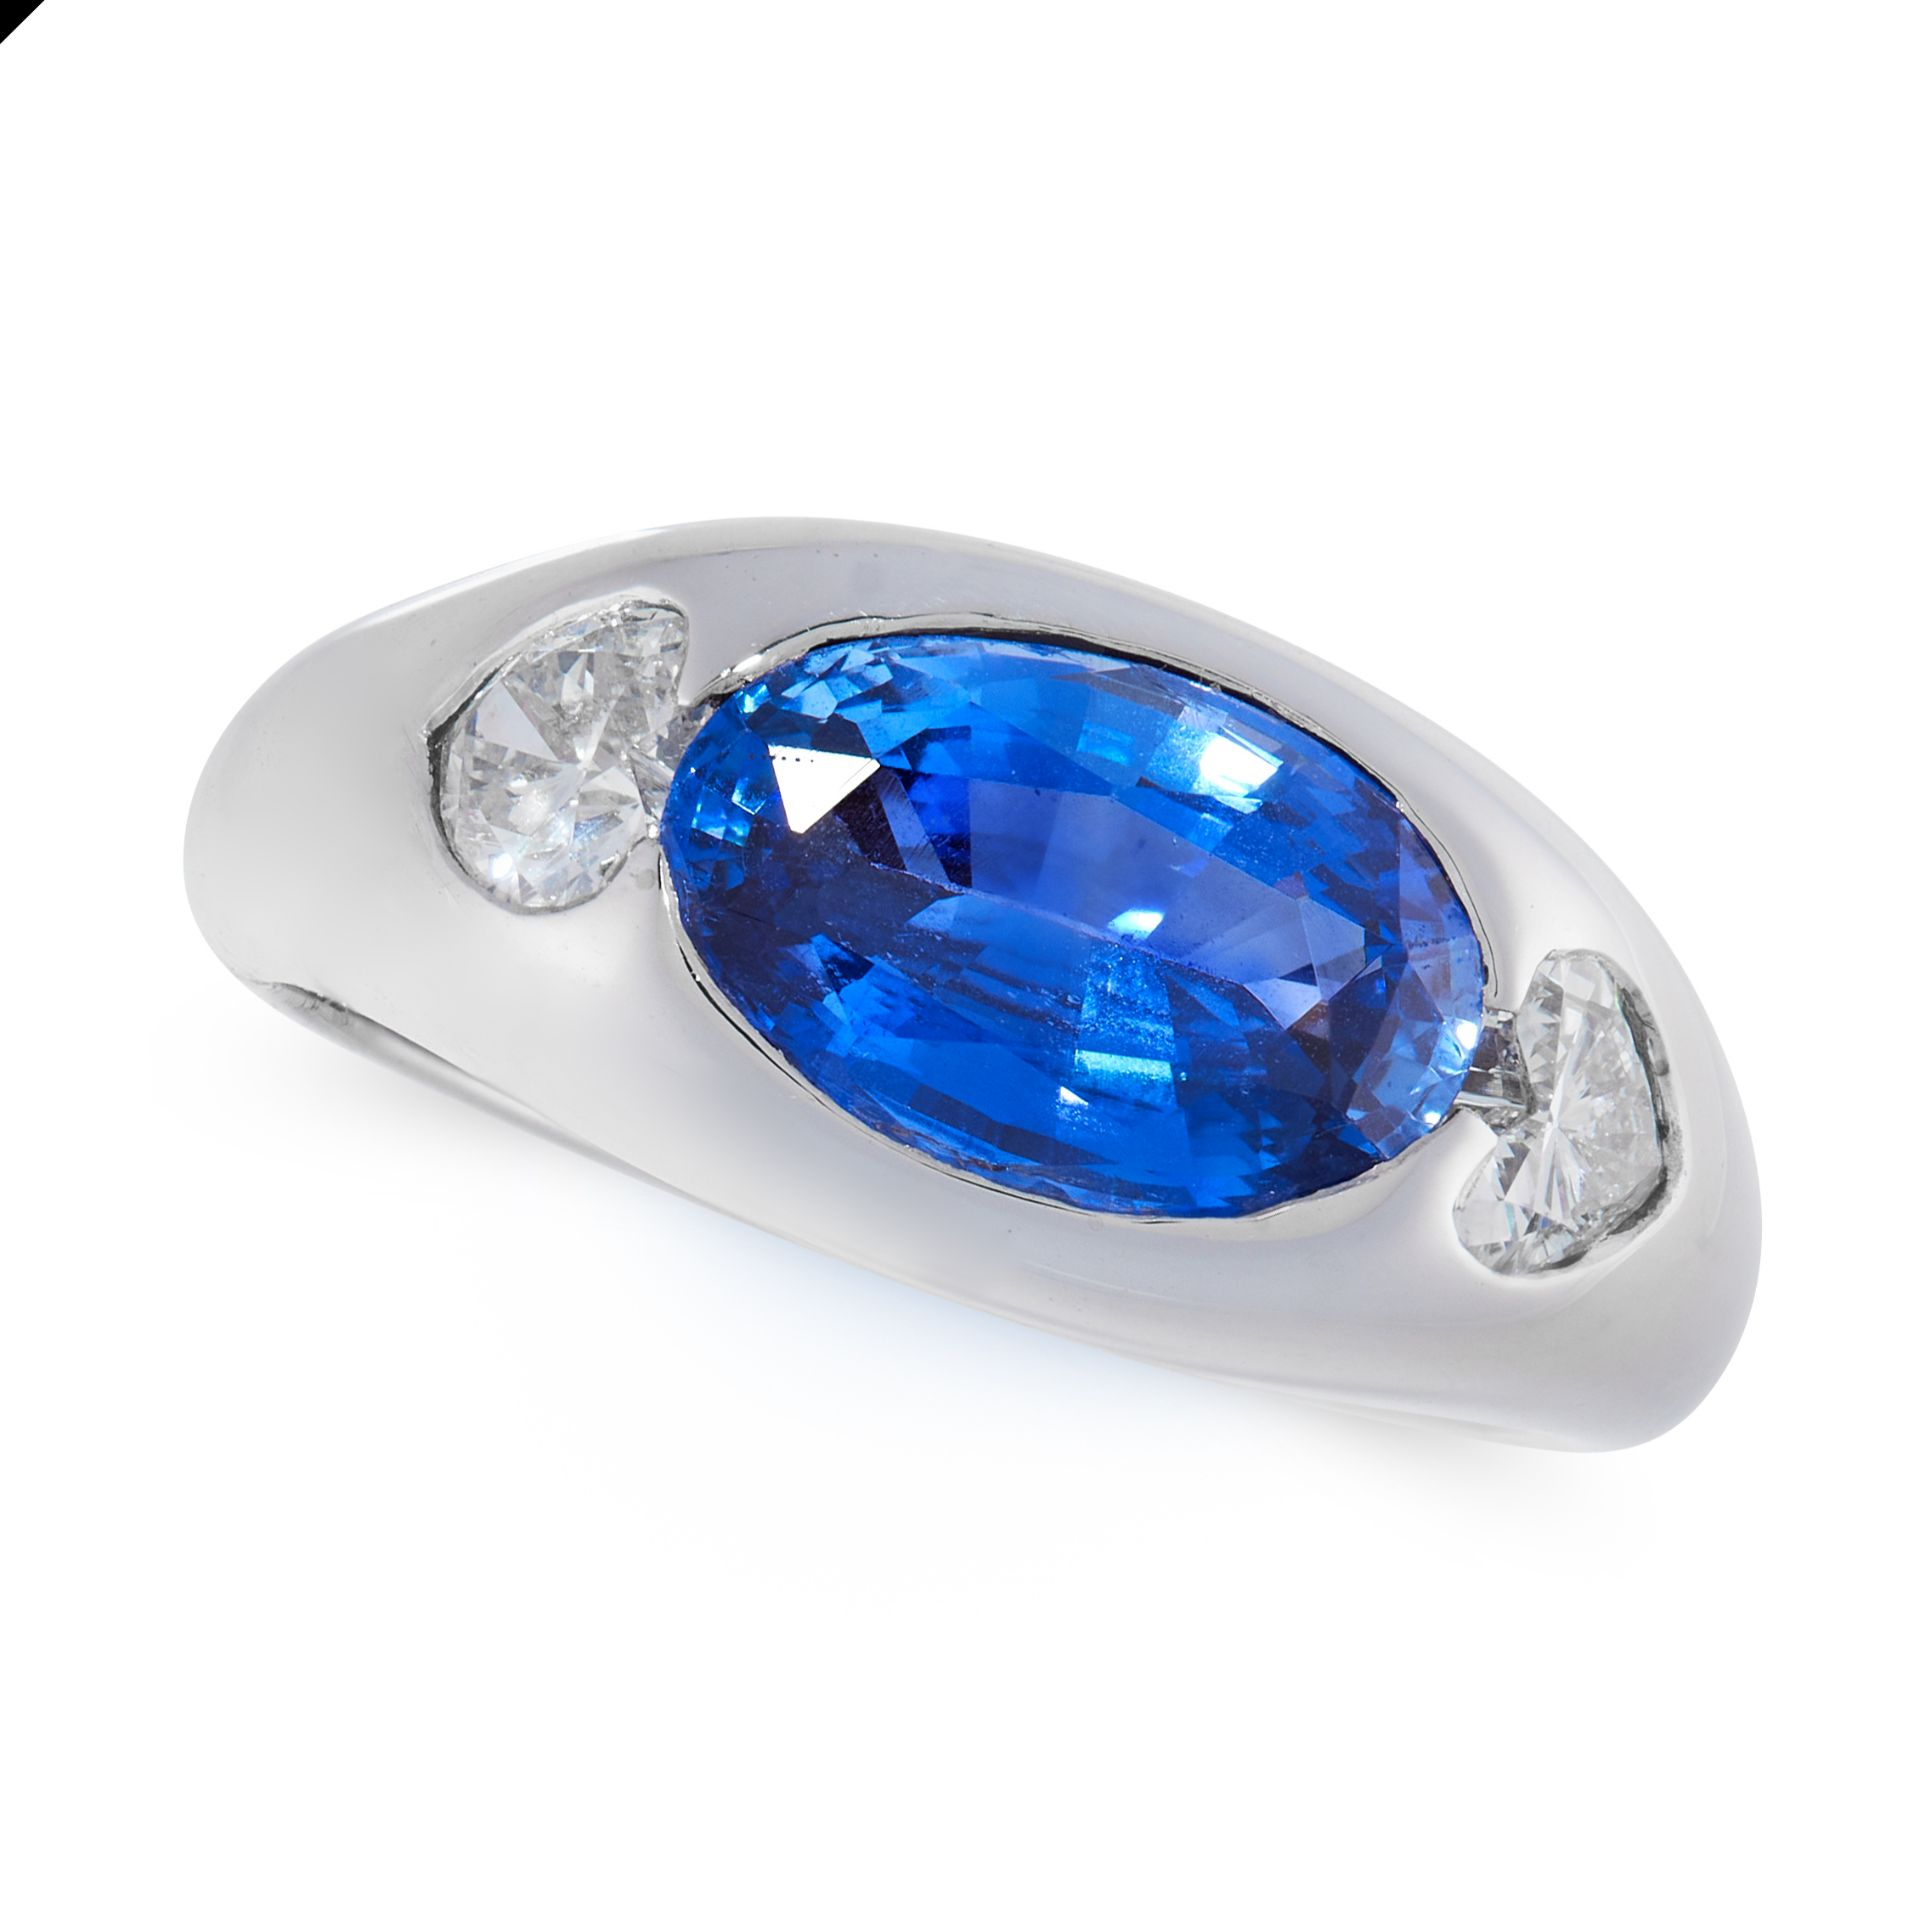 A SAPPHIRE AND DIAMOND DRESS RING in 18ct white gold, set with an oval cut blue sapphire of 3.34